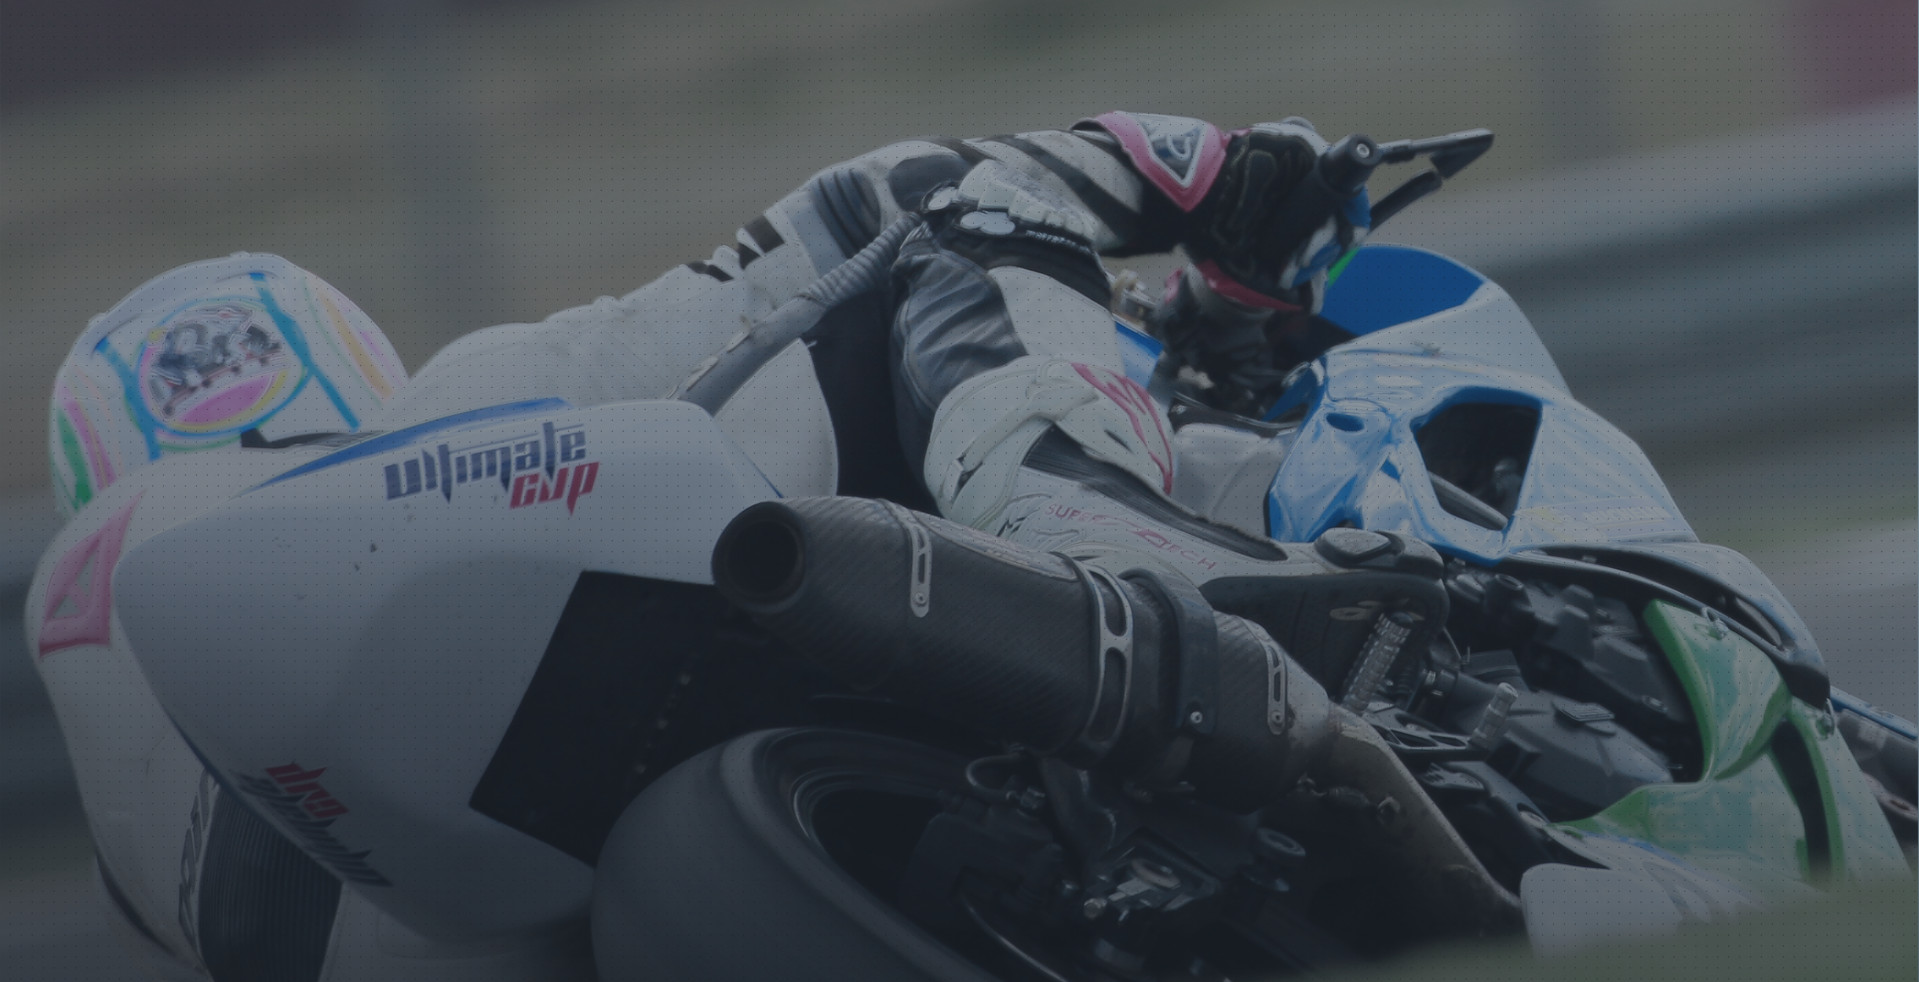 Track Day Magny Cours